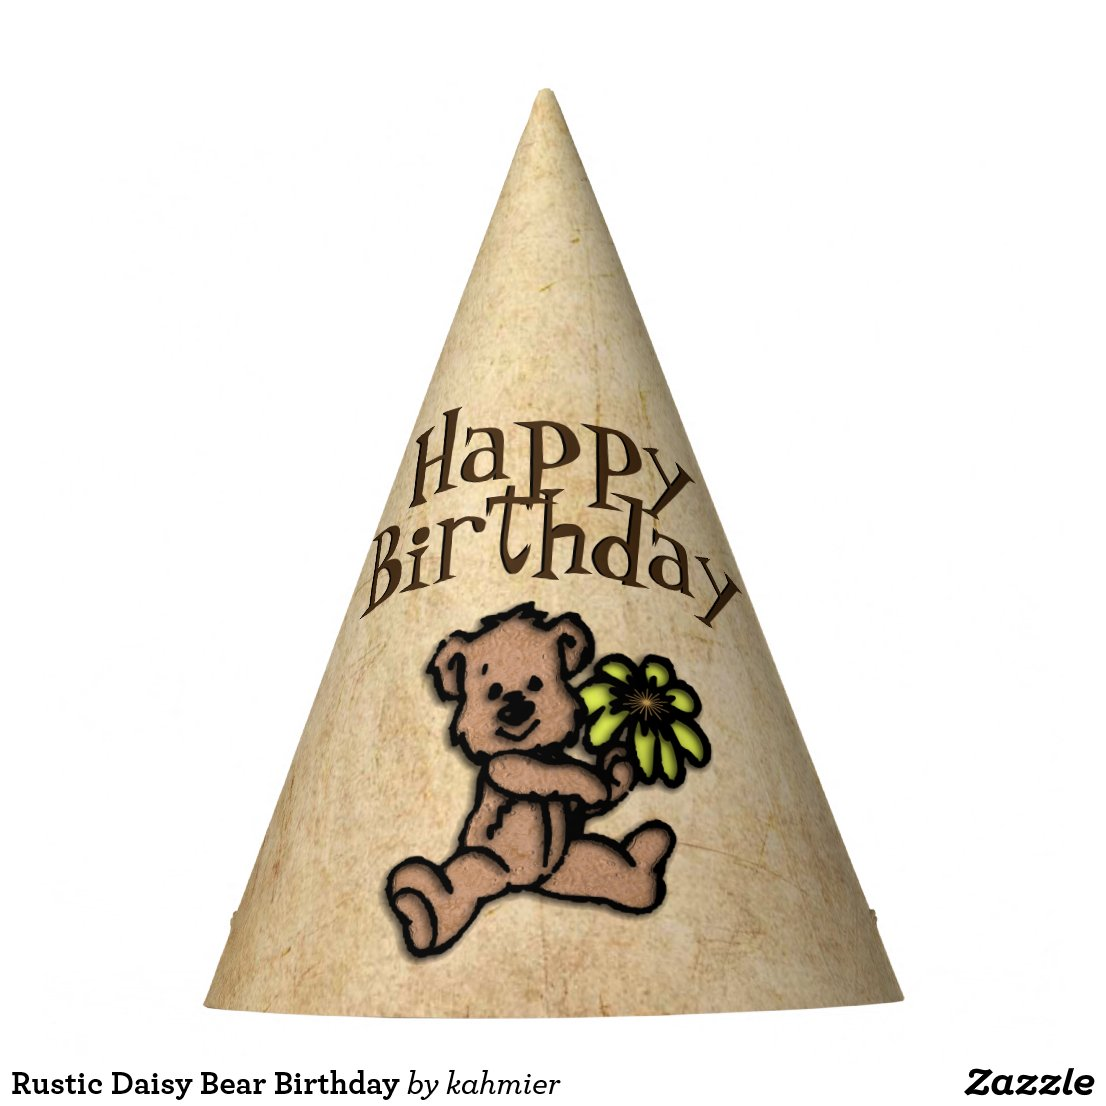 Rustic Daisy Bear Birthday Party Hat